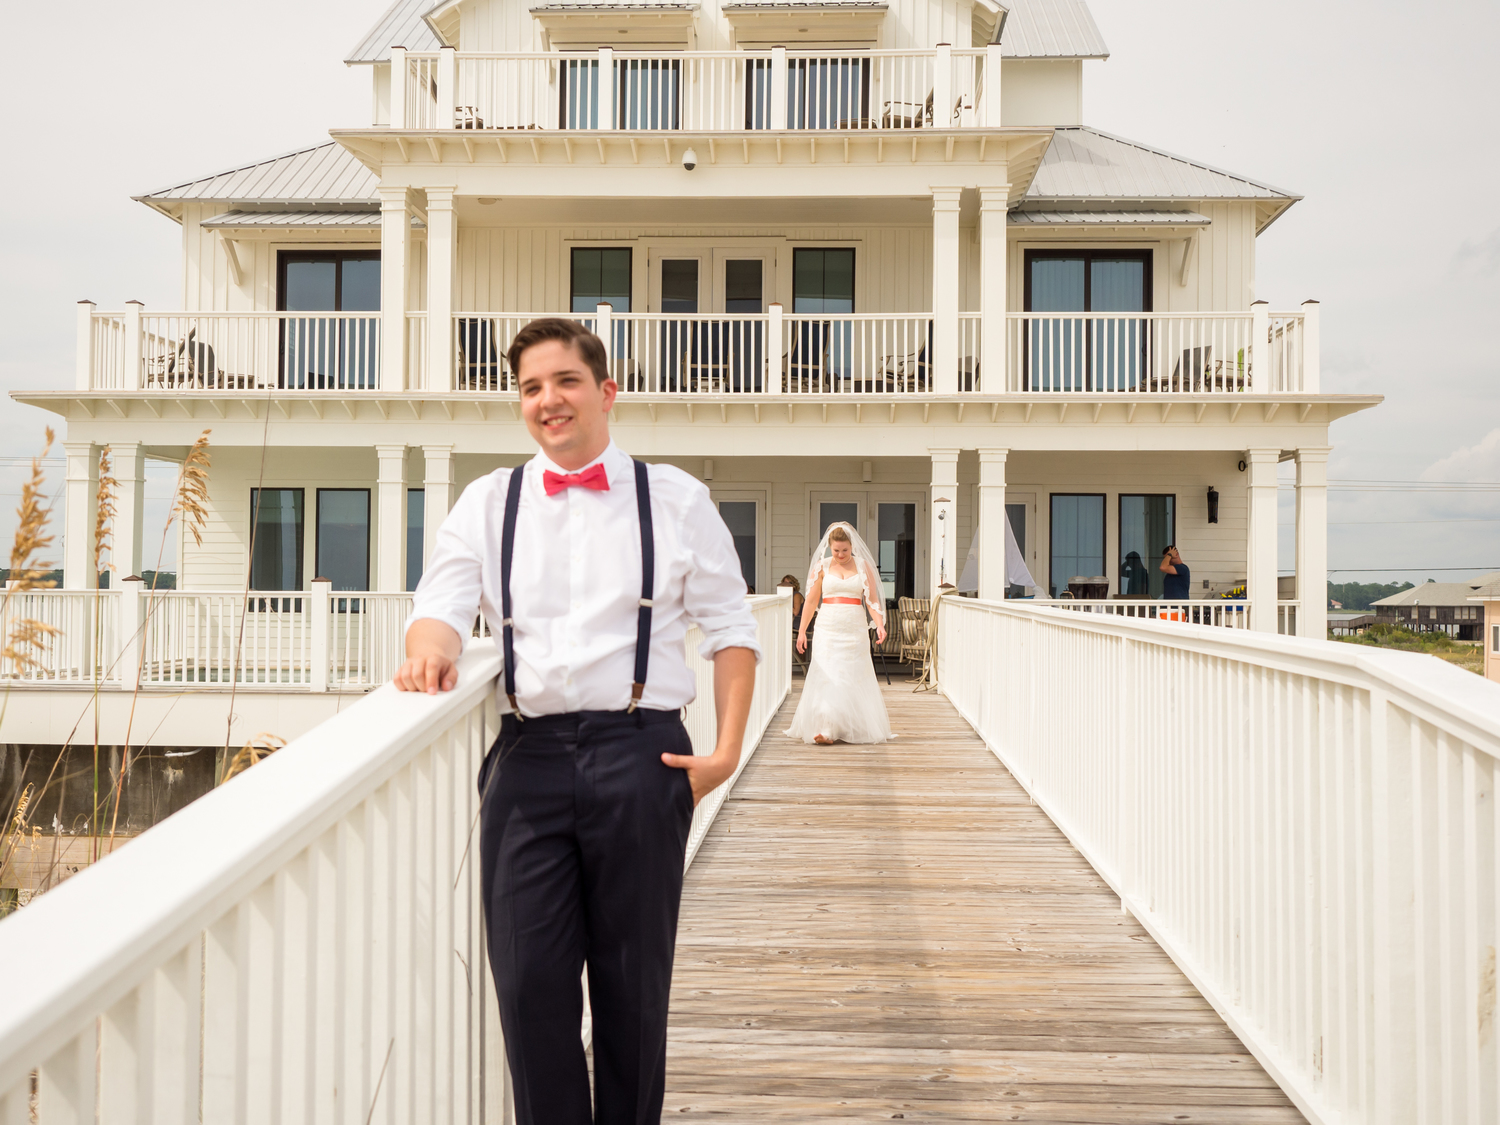 private beach house wedding reception